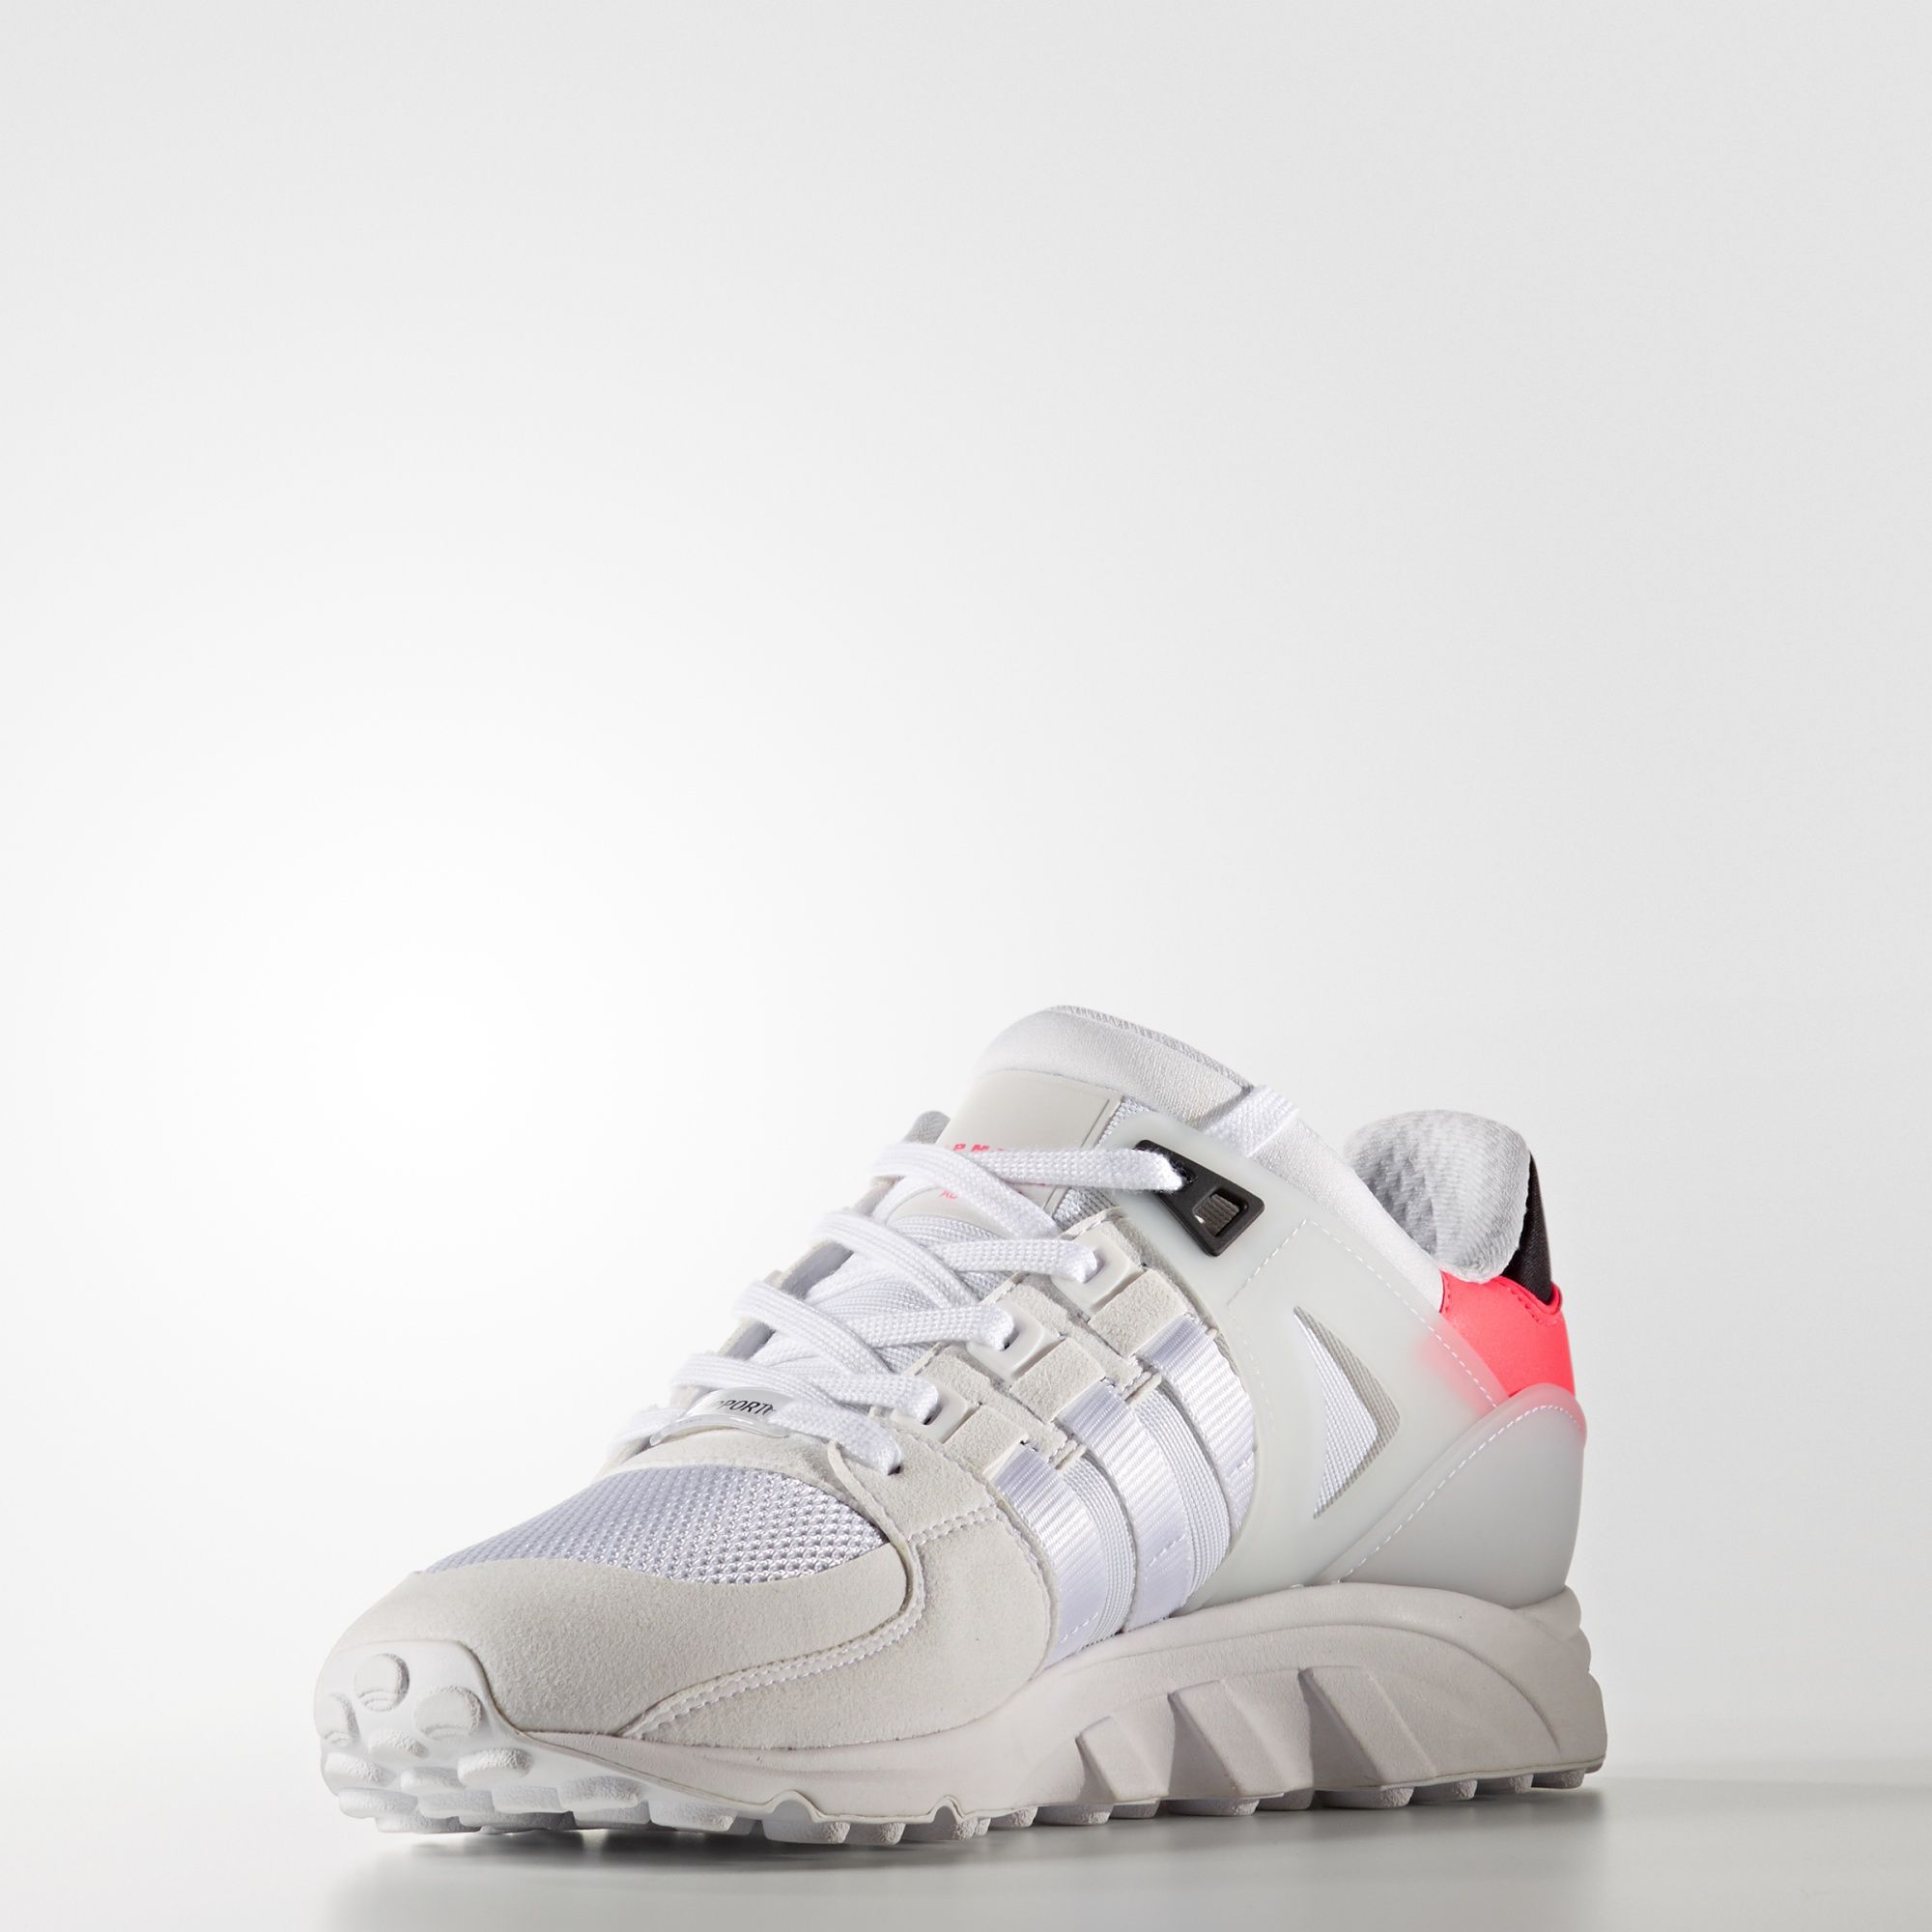 adidas EQT Support RF White Turbo Red BA7716 1